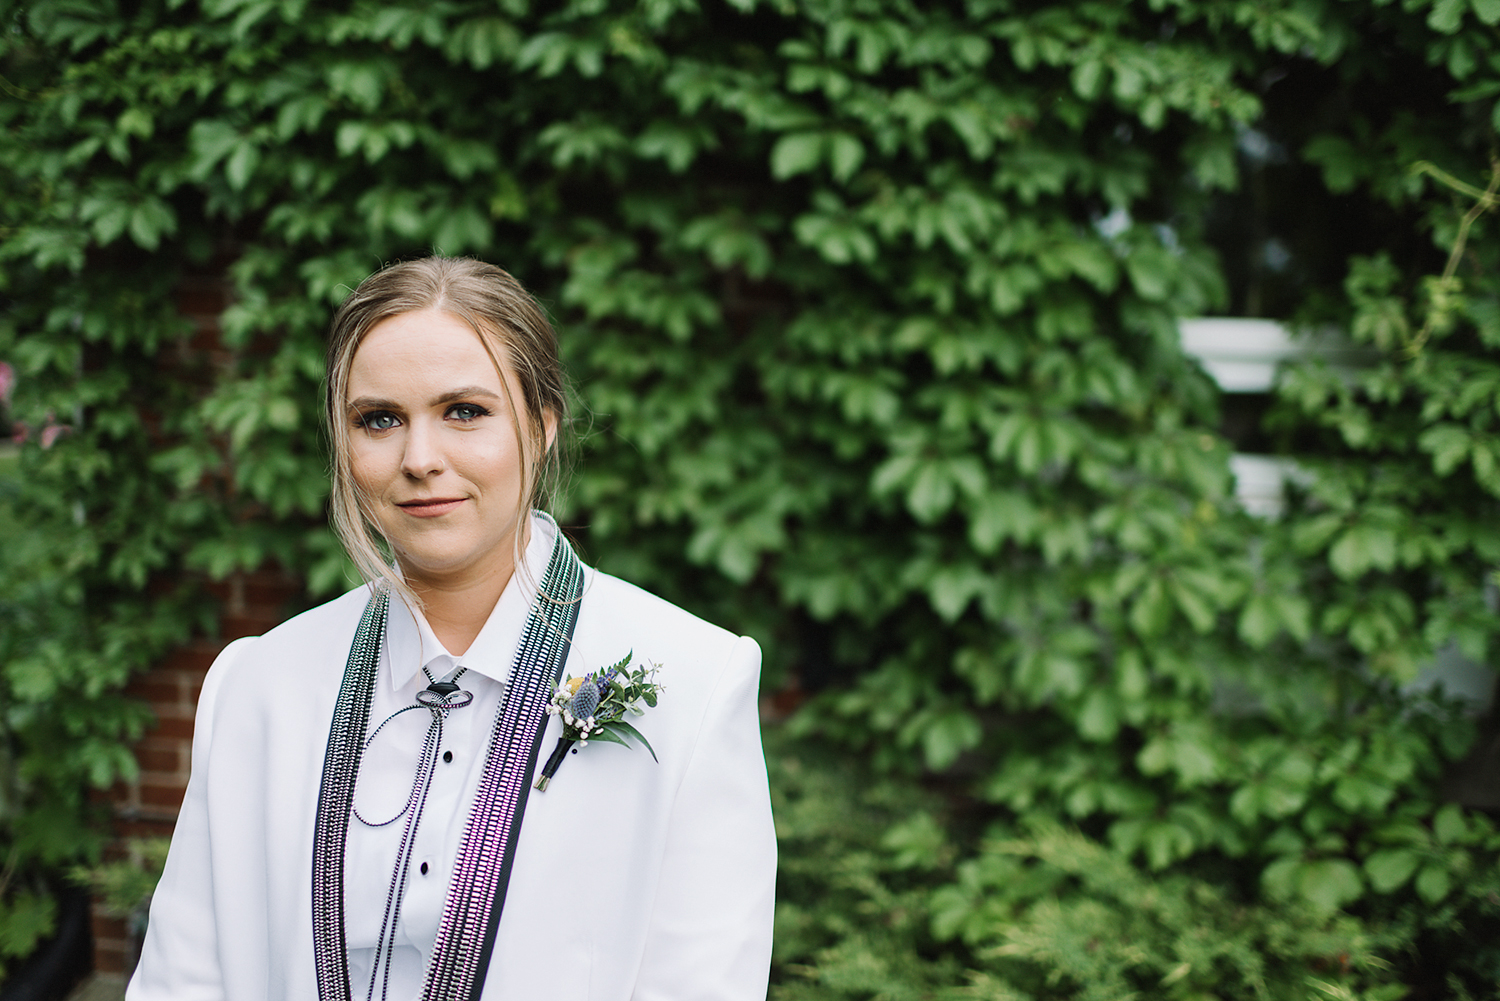 cambium-farms-wedding-toronto-wedding-photographer-ryanne-hollies-photography-farmhouse-cool-trendy-hipster-bride-white-suit-ready-portrait-editorial-badass-suit-details-zippers-very-cool.jpg